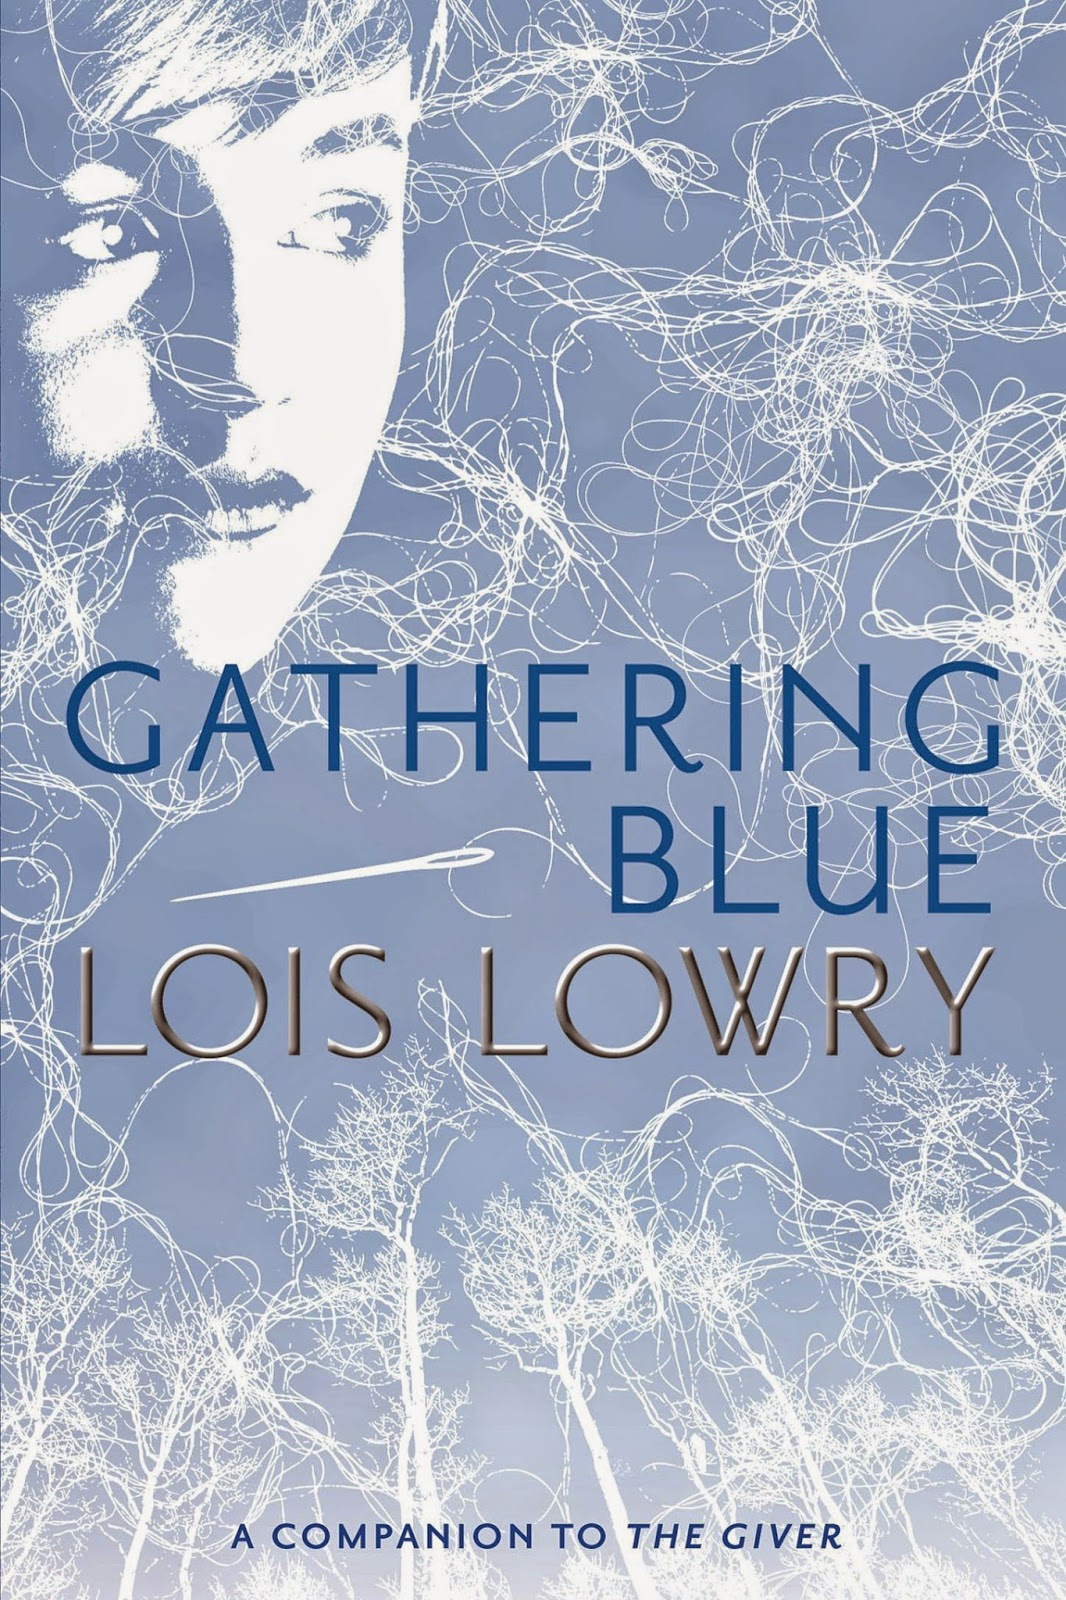 gathering blue lois lowery Gathering blue (houghton mifflin, 2000) while gathering blue is not exactly a sequel to lois lowry's dark and powerful newbery-award winning novel the giver , it is also set in a futuristic post-apocalyptic society bound with rigid structures.